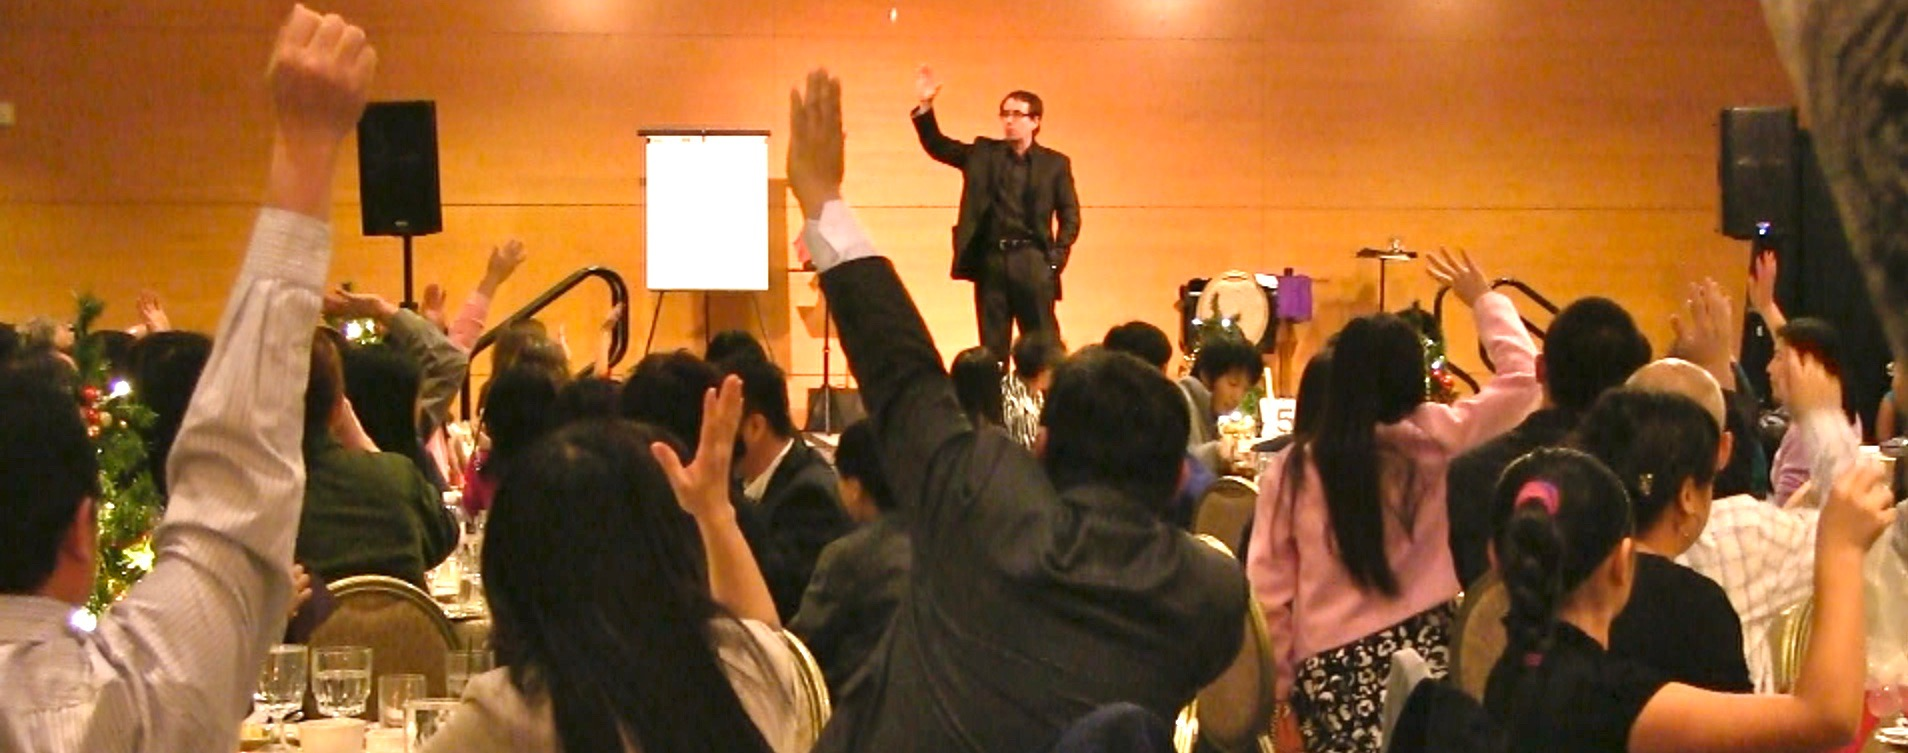 San Jose magician with corporate crowd